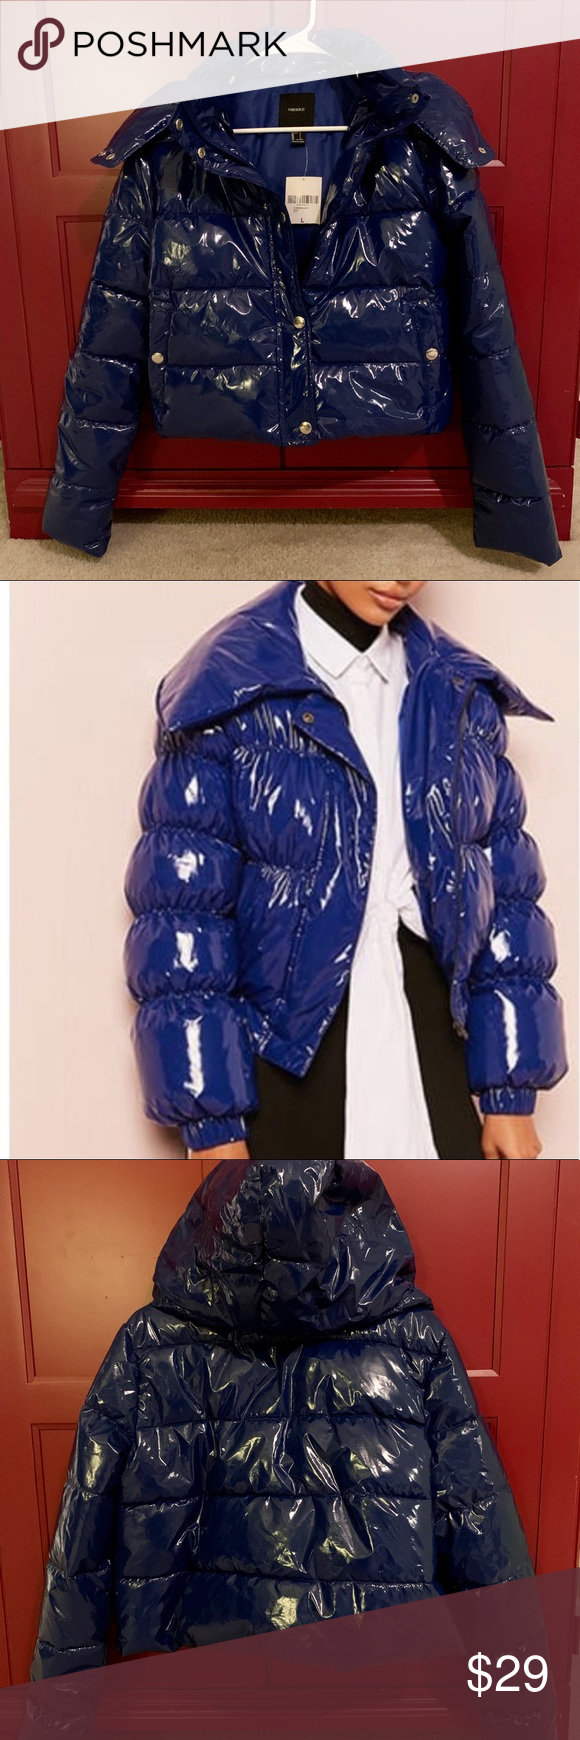 Forever 21 Blue Vinyl Puffer Jacket With Hood In 2020 Blue Vinyl Jackets Puffer Jackets